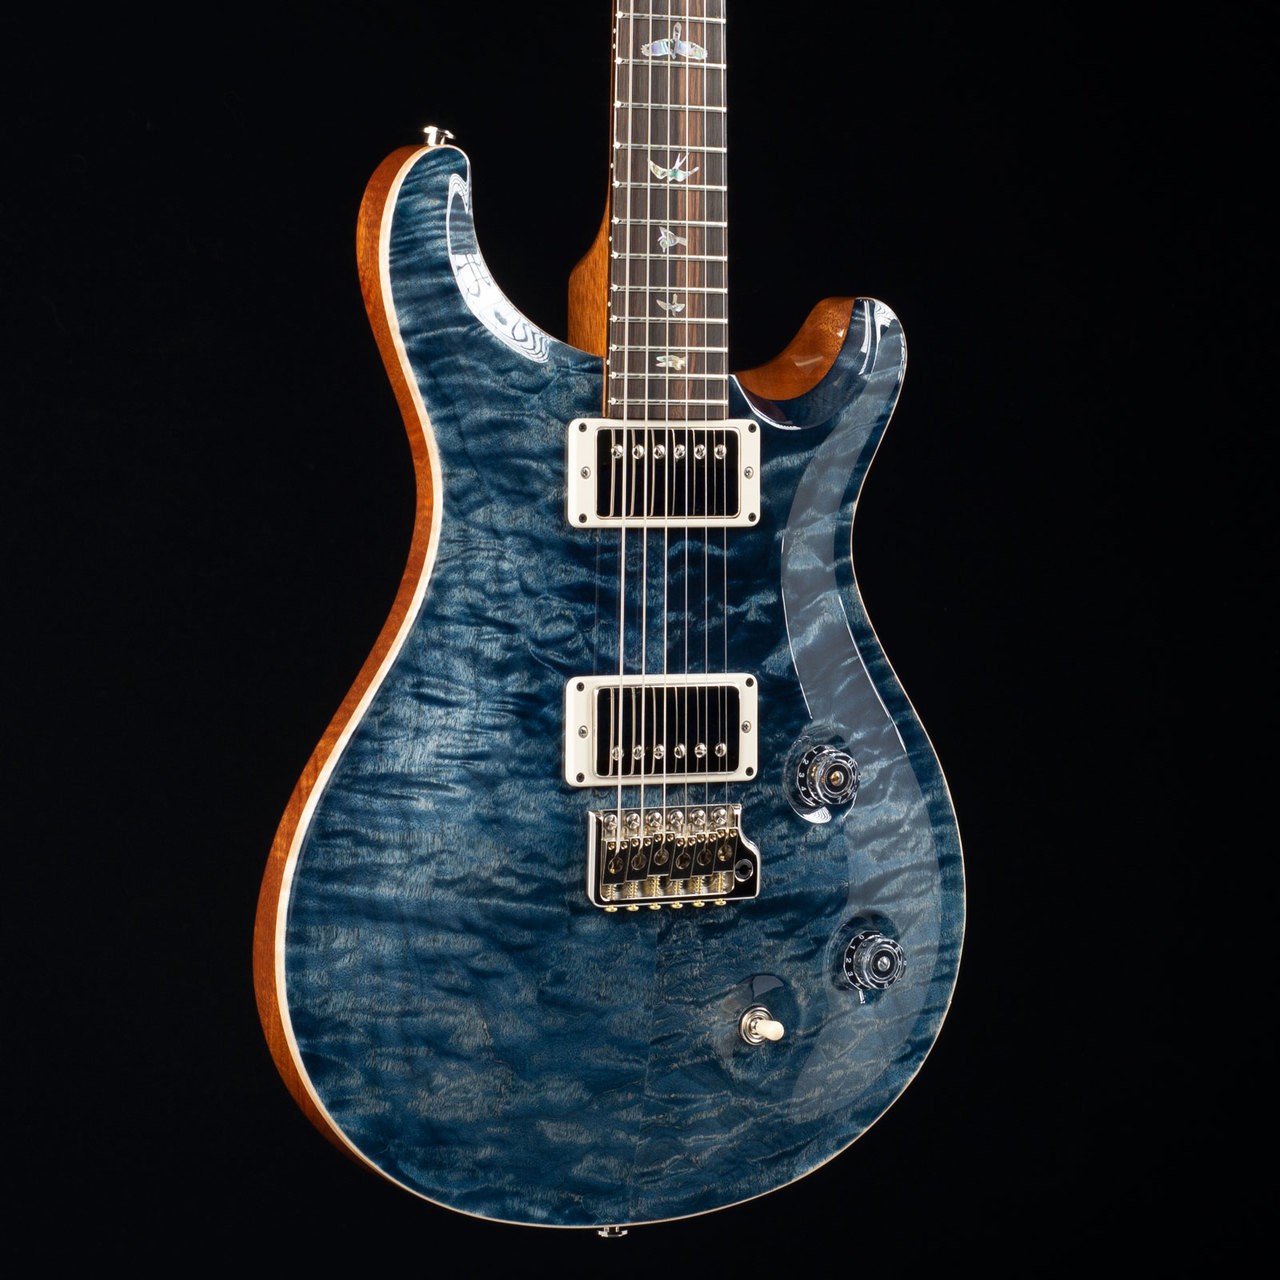 prs custom 22 10 top mun ebony fretboard wood library faded whale blue 1645 at moore guitars. Black Bedroom Furniture Sets. Home Design Ideas